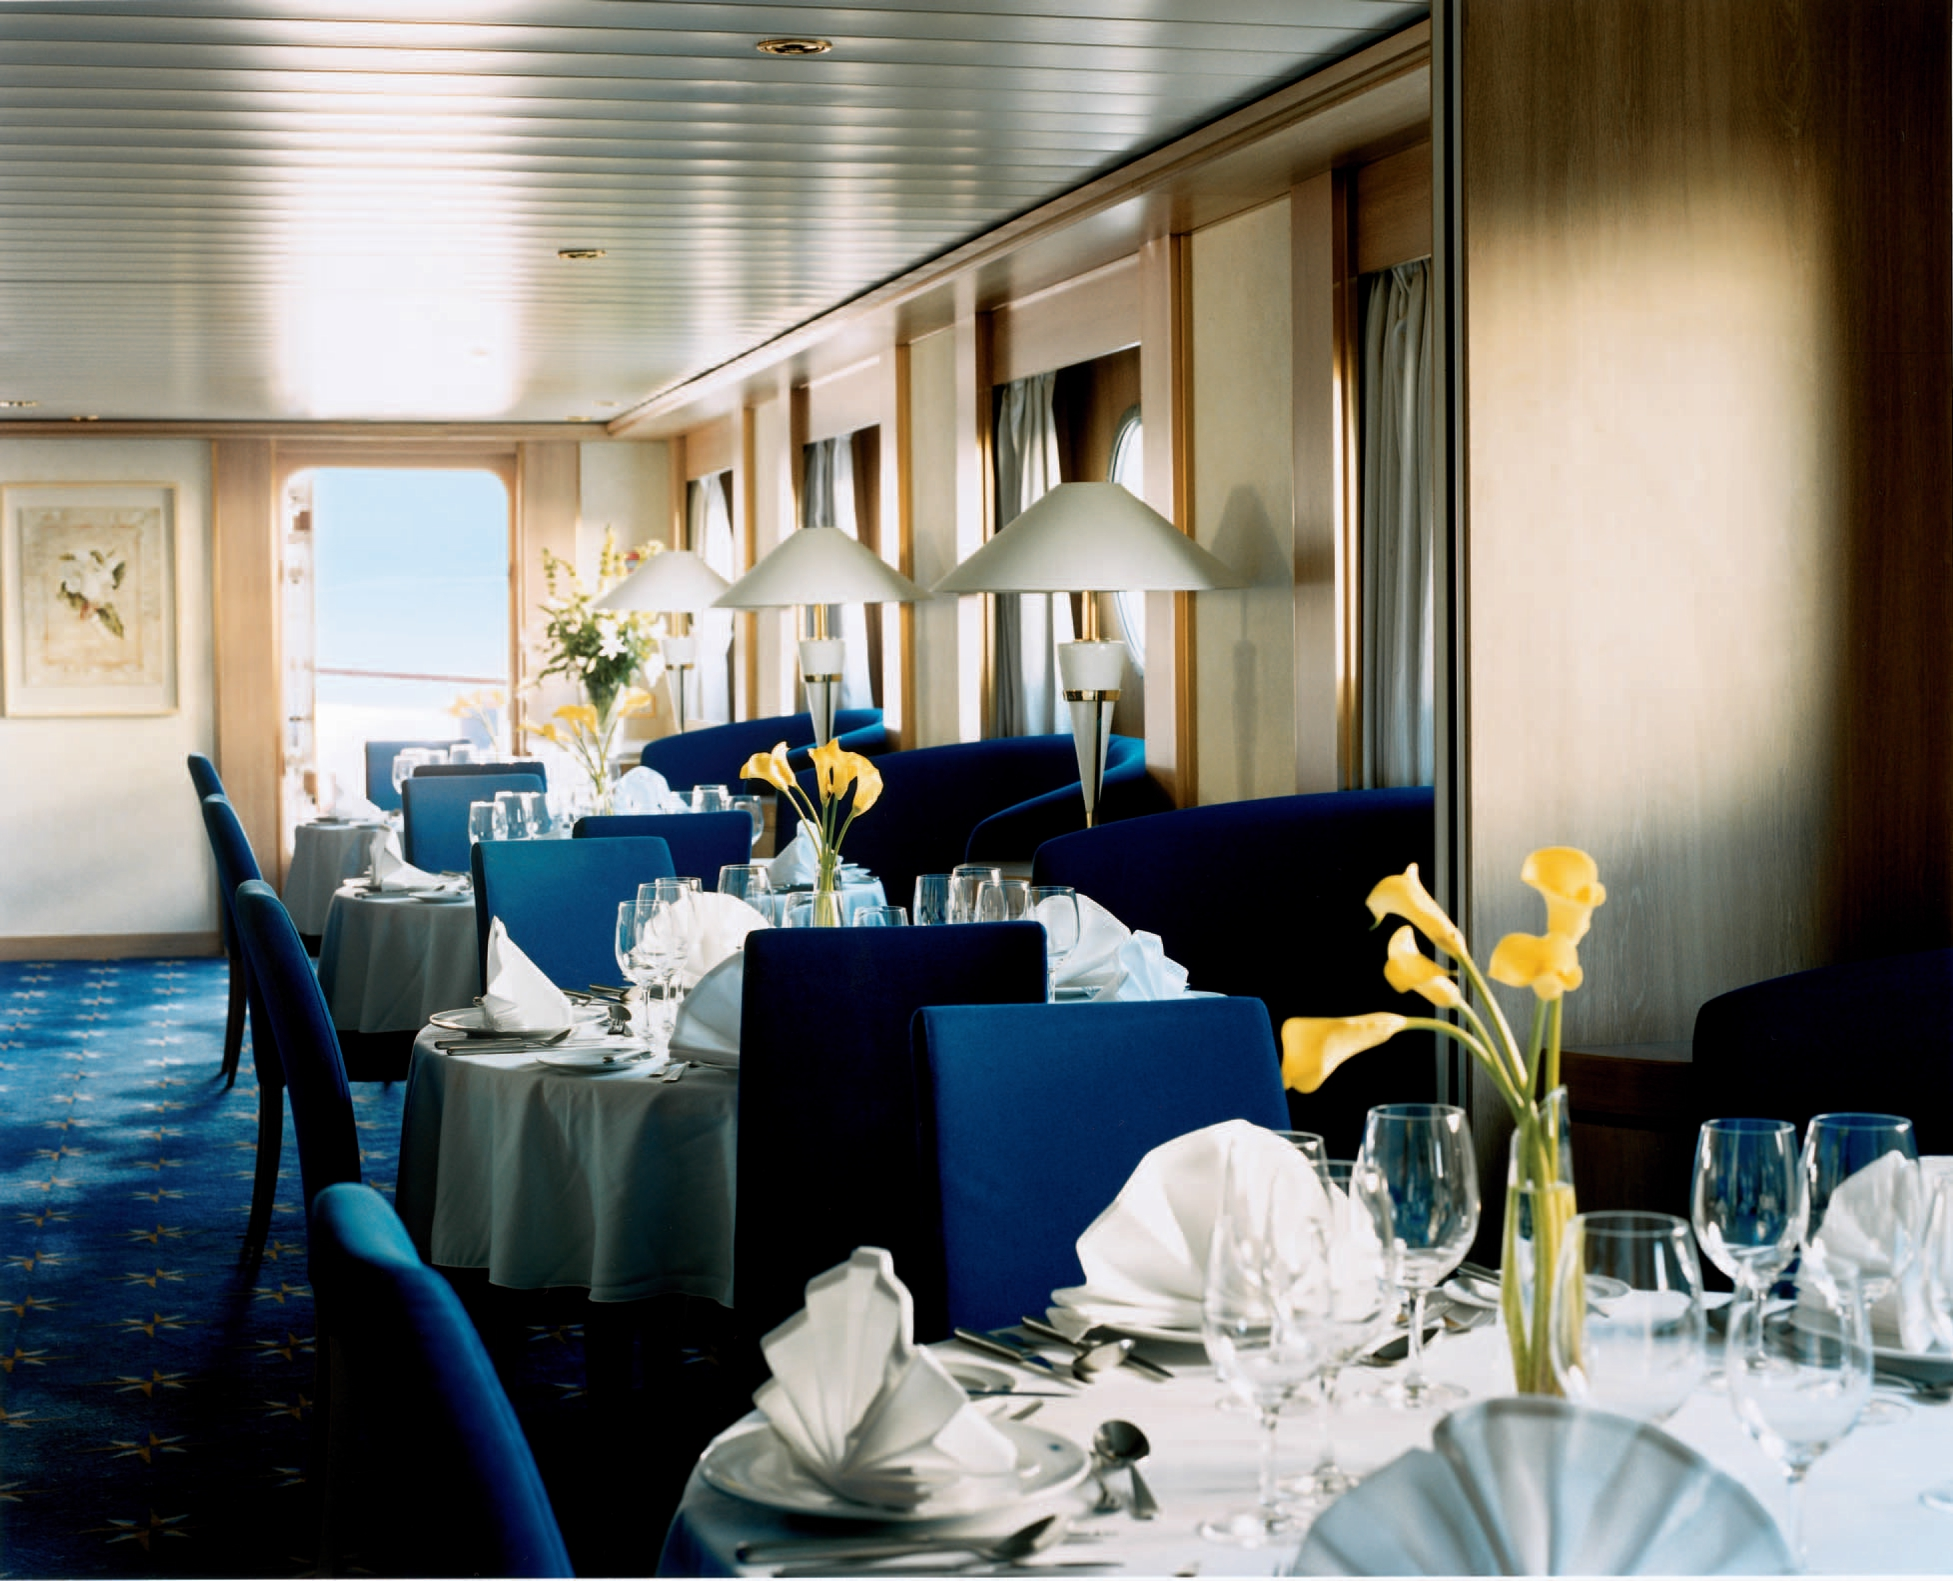 celebrity cruises celebrity xpedition dining 1.jpg